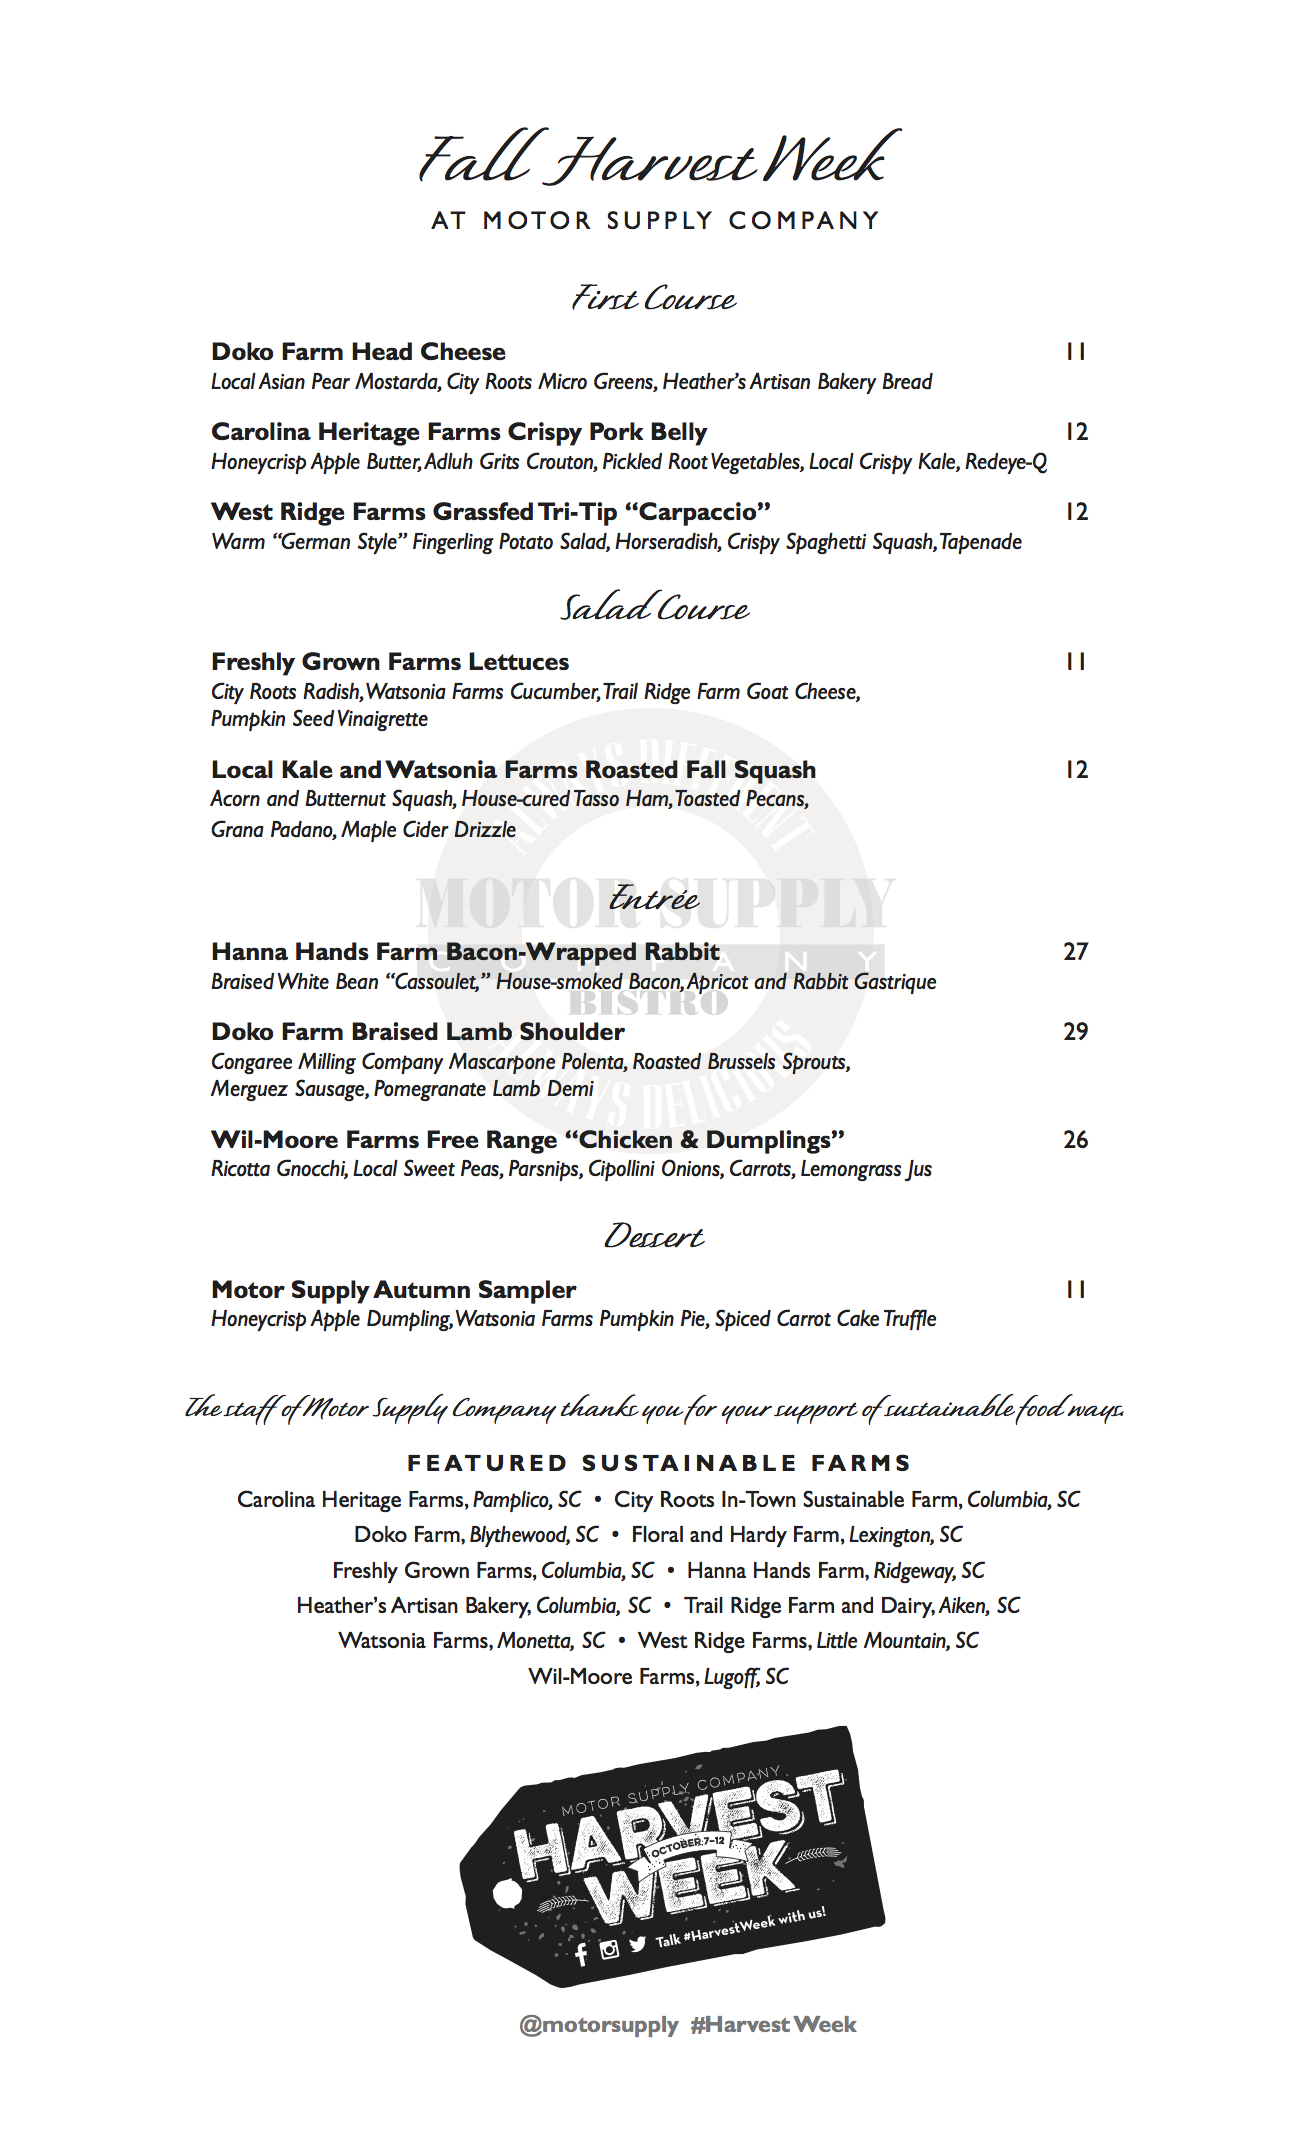 Harvest Week Dinner Menu: Fall 2014 at Motor Supply Co. Bistro